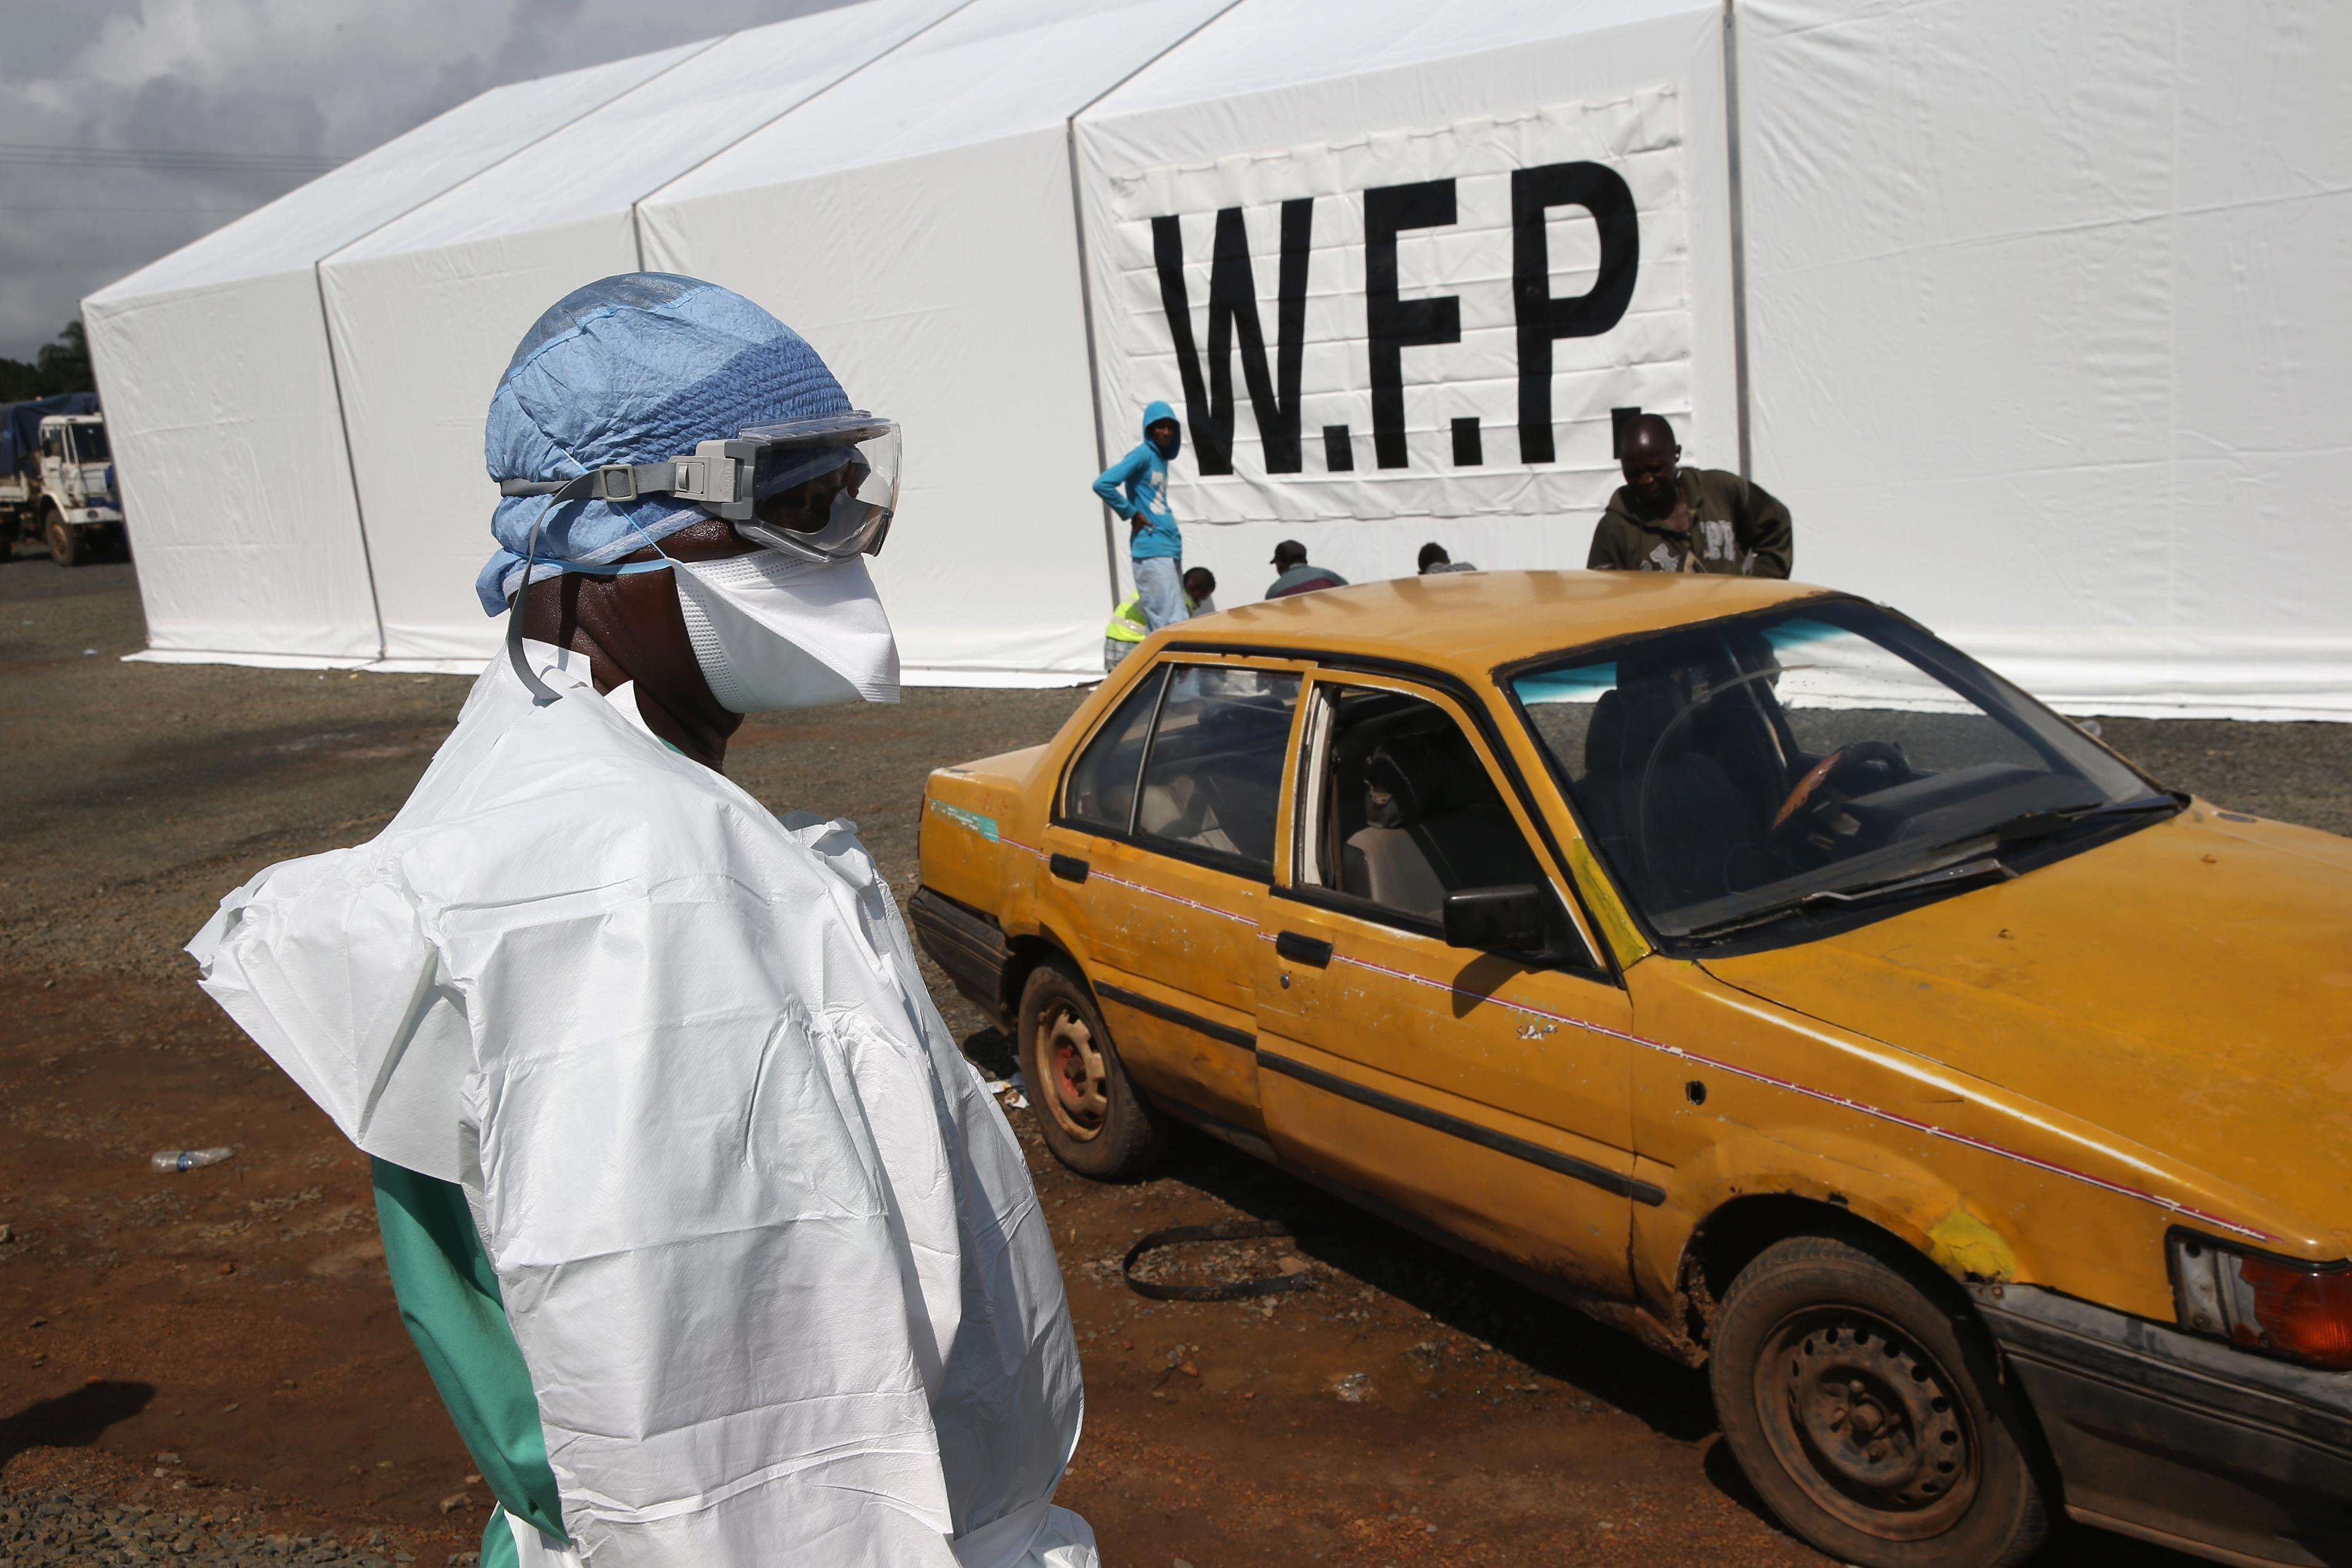 Leyenda:MONROVIA, LIBERIA - AUGUST 22: A Doctors Without Borders (MSF), staffer stands by as people arrive, requesting to be tested for the Ebola virus at the MSF treatment center on August 22, 2014 near Monrovia, Liberia. Foto: Getty Images